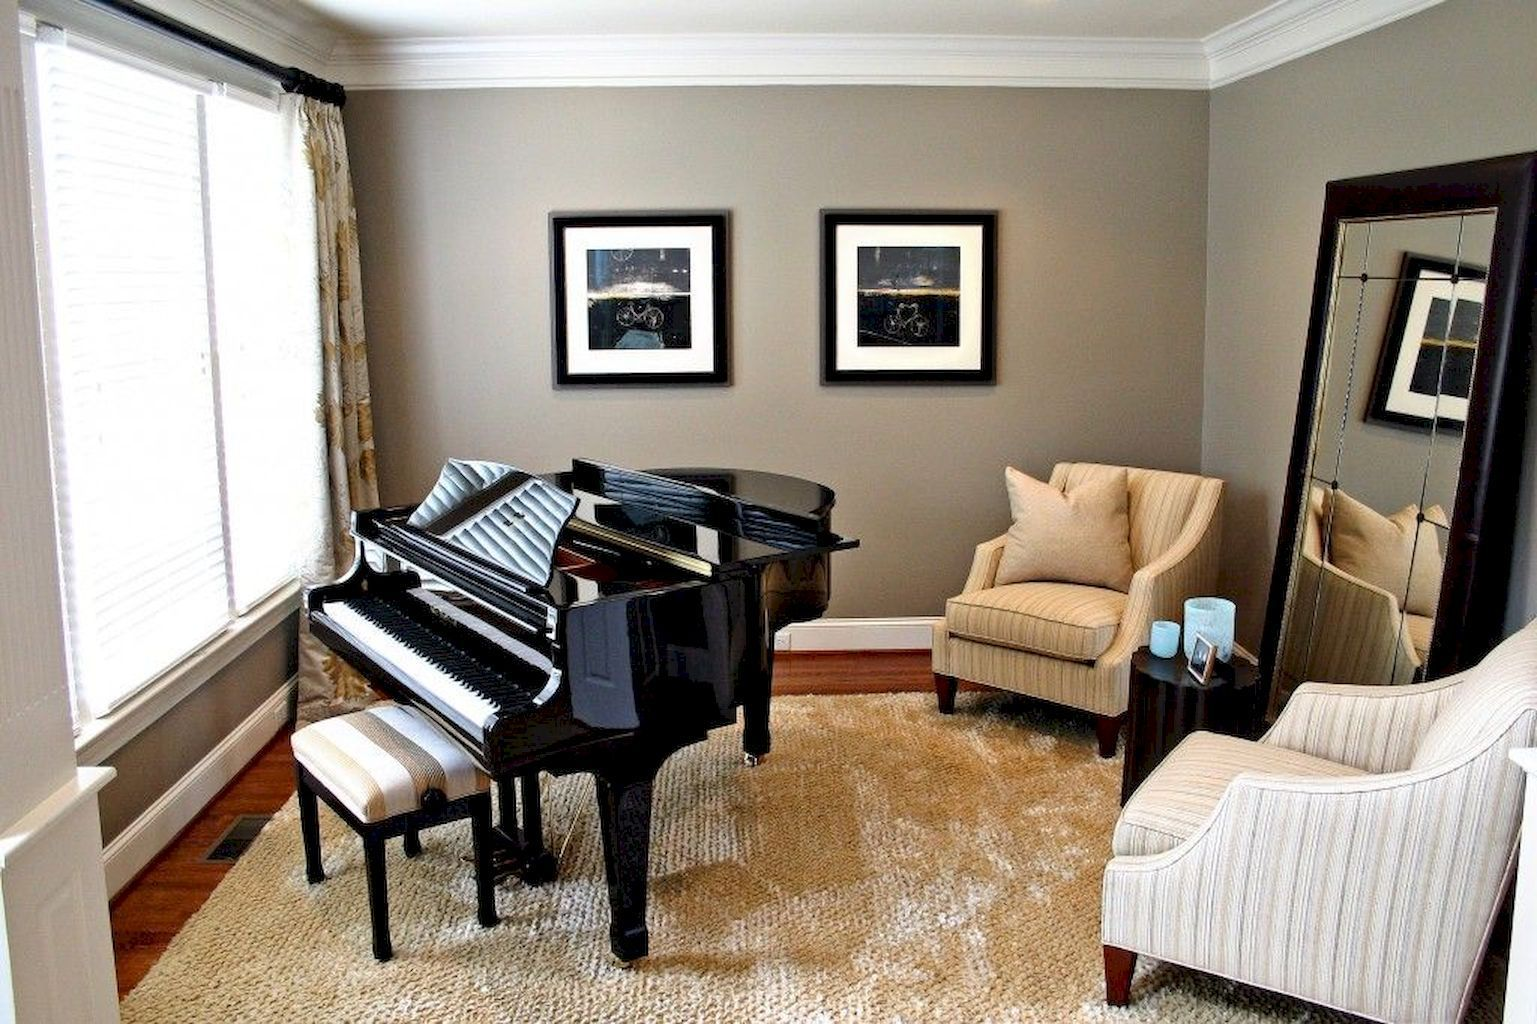 Best 19+ Small Living Room Ideas and Design (That Will ... on Small Living Room Ideas 2019  id=17404